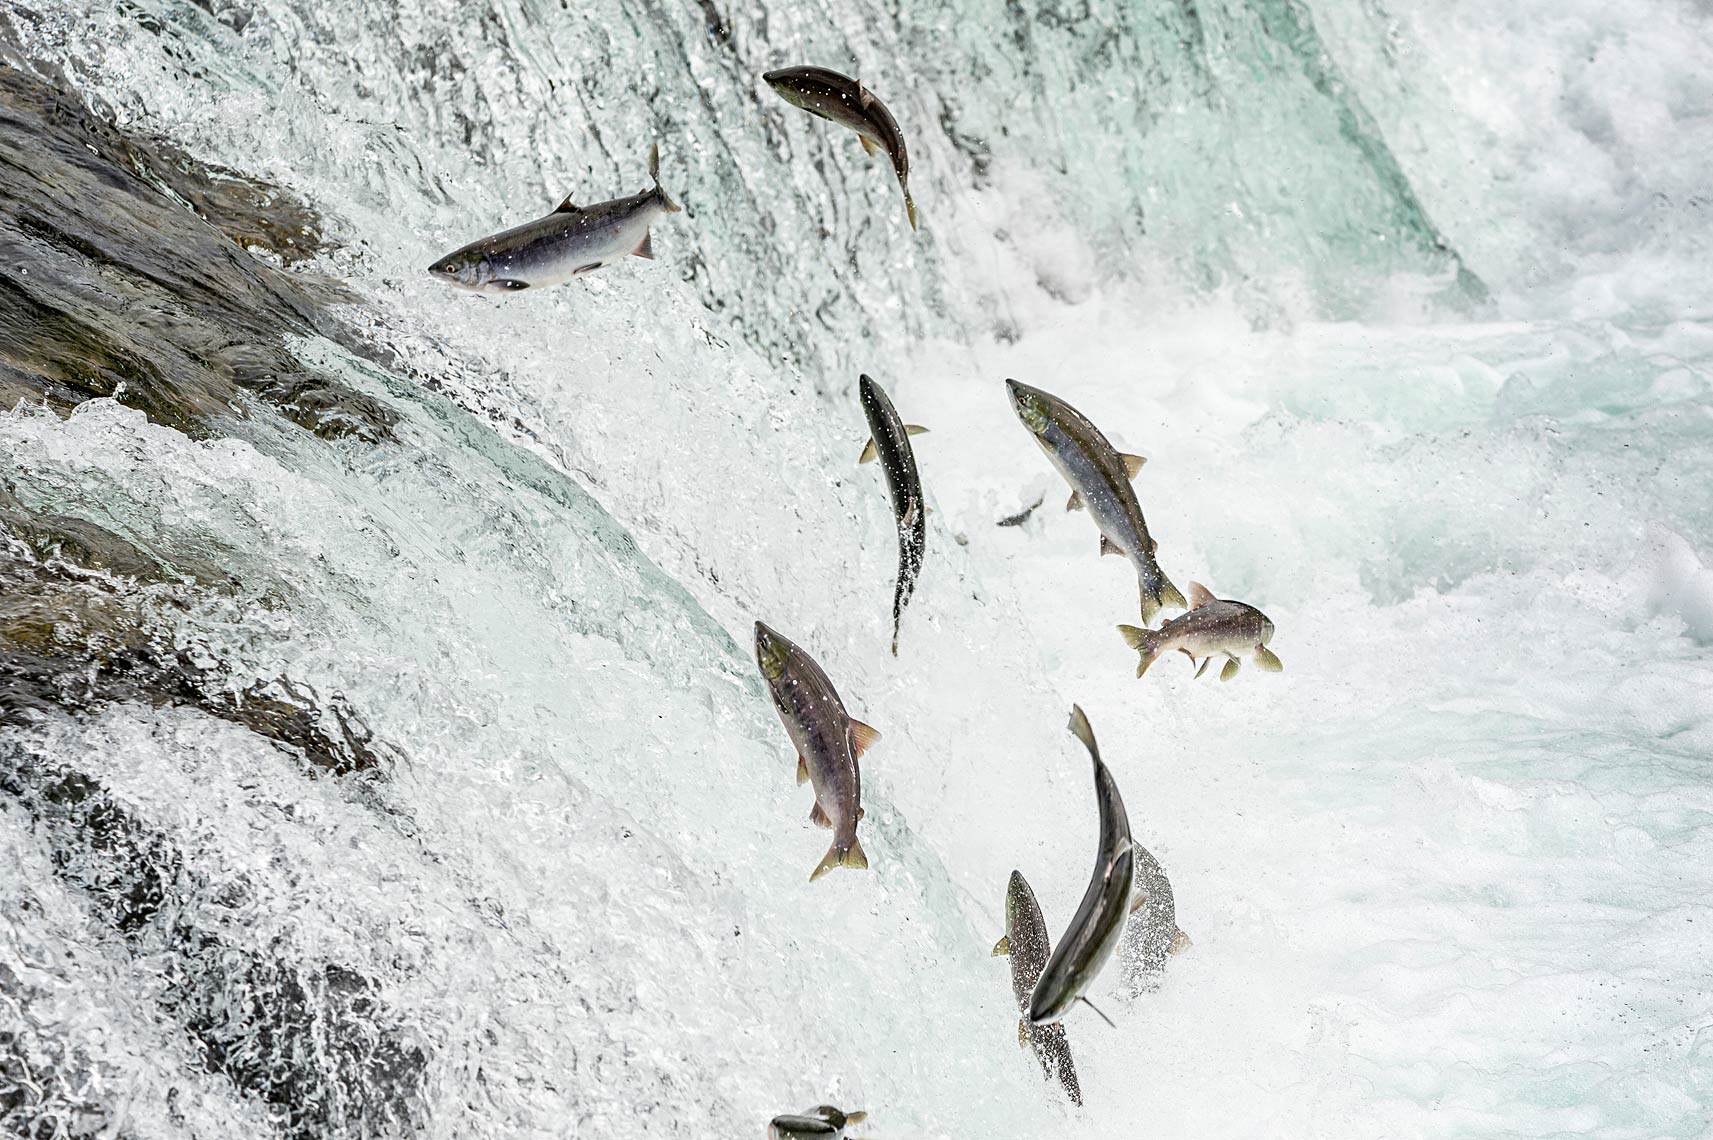 Sockeye salmon attempt to jump over Brooks Falls in Katmai National Park.